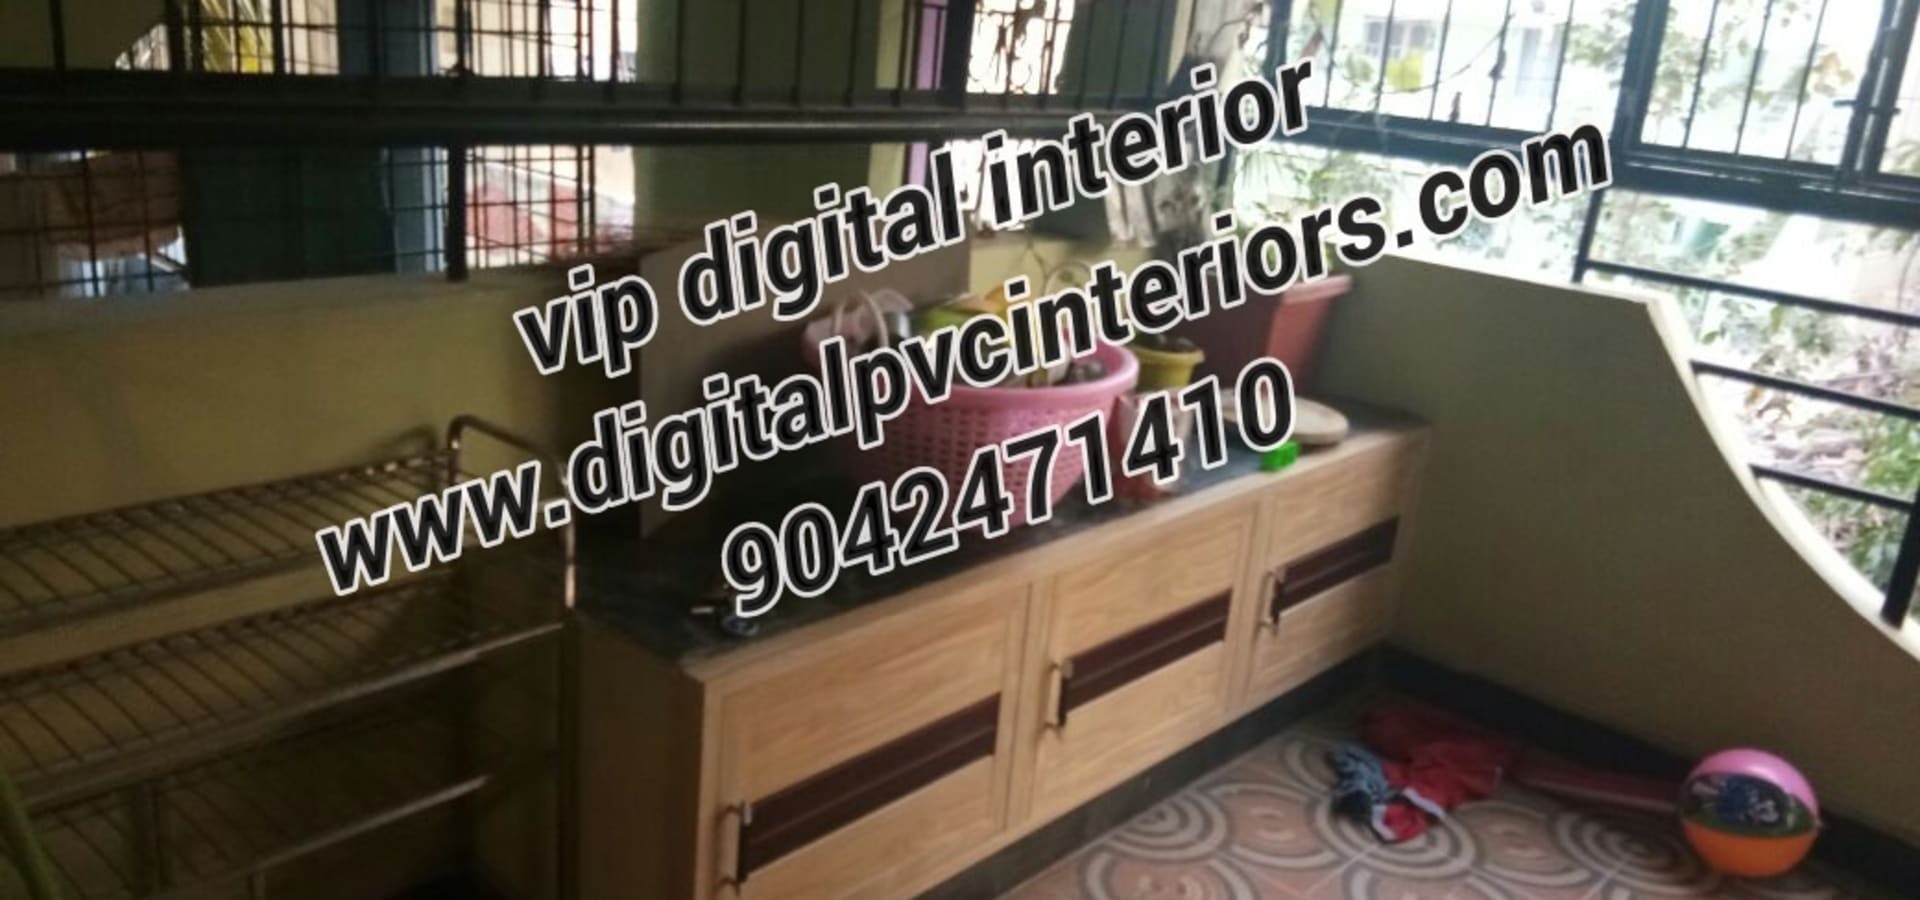 vip digital interior in bangalore